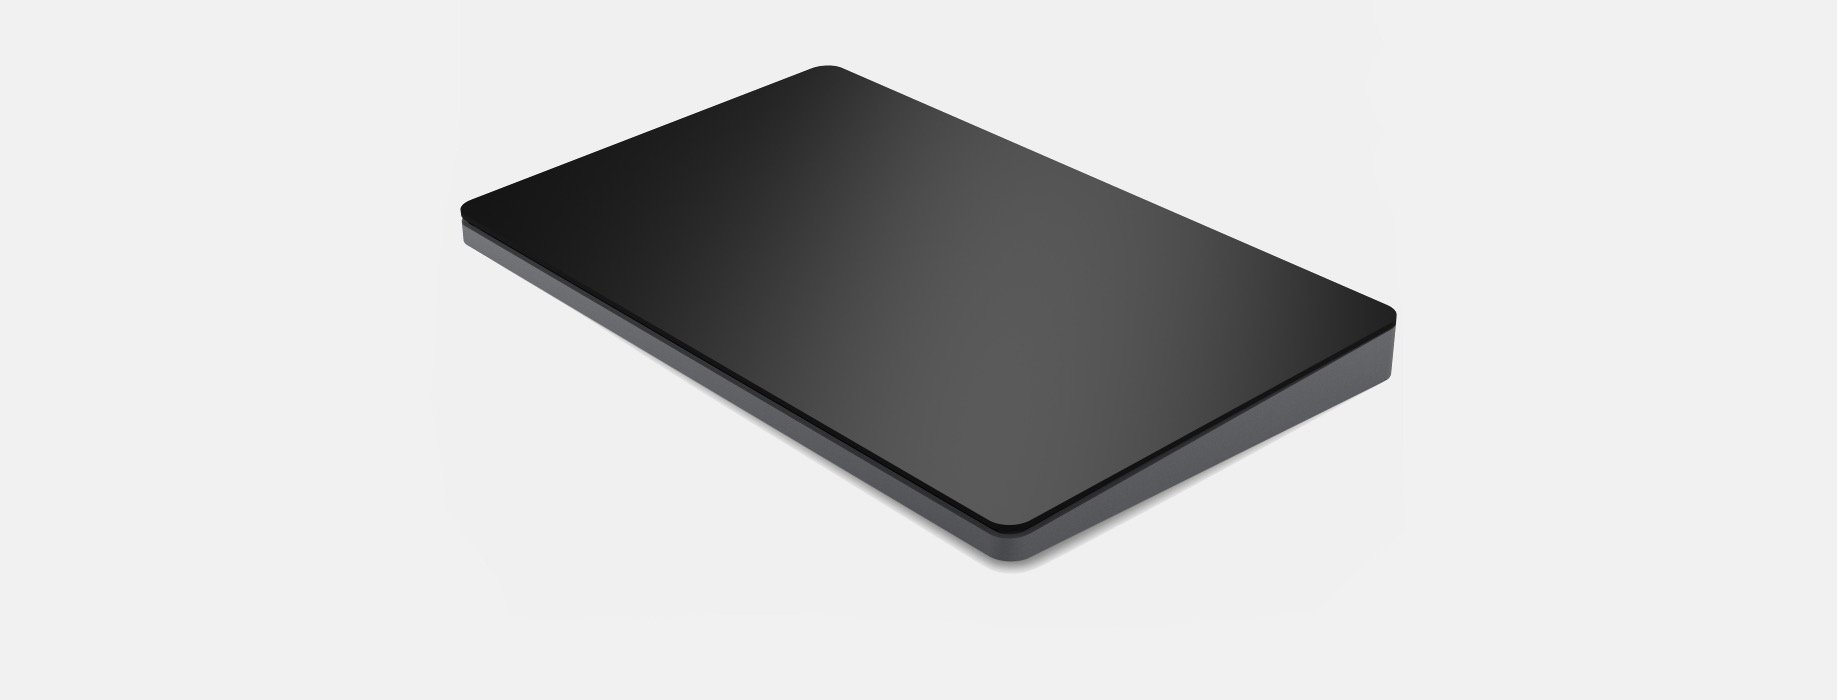 The Brydge trackpad. (Source: Brydge)